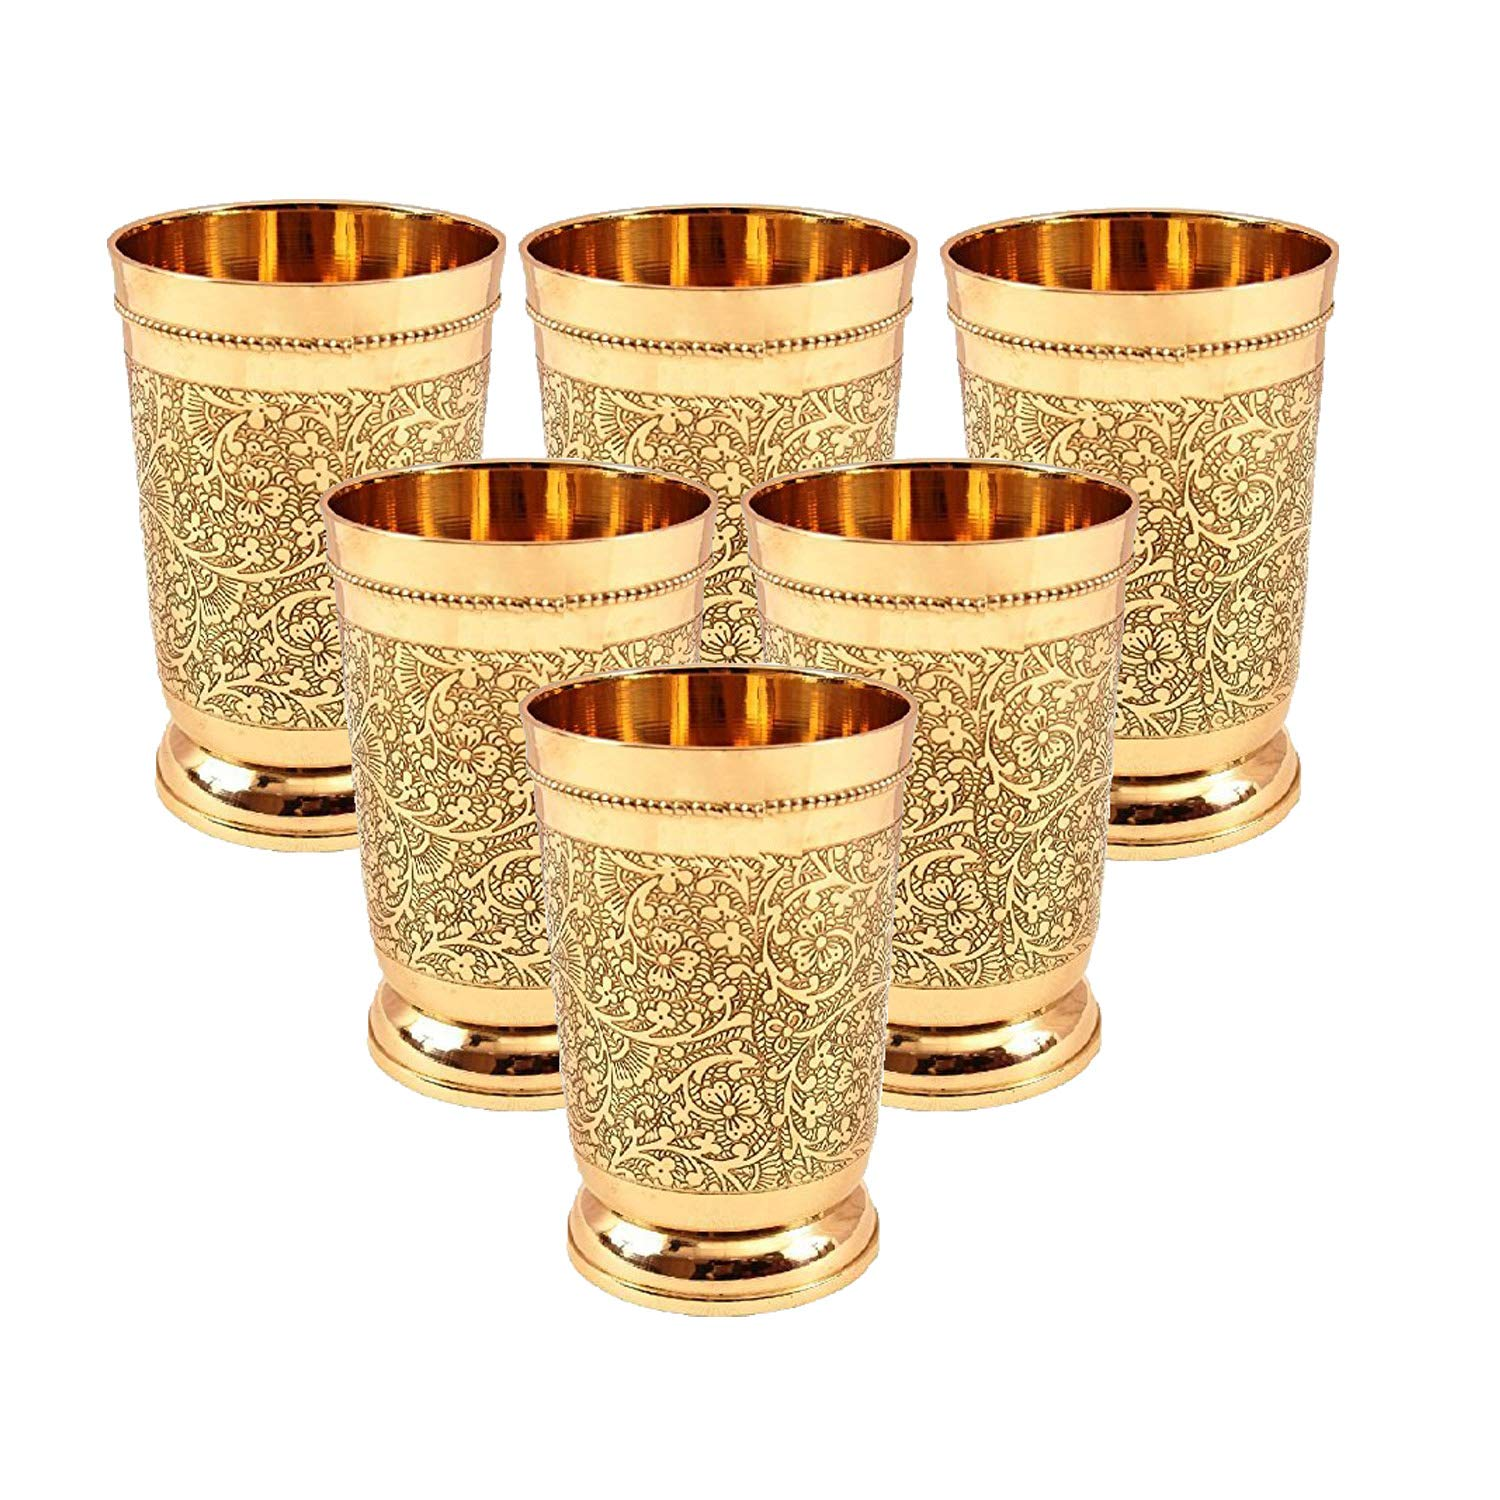 Set Of 6 Embossed Designer Brass Mint Julep Cup Goblet Tumbler Capacity 12 Ounce Each